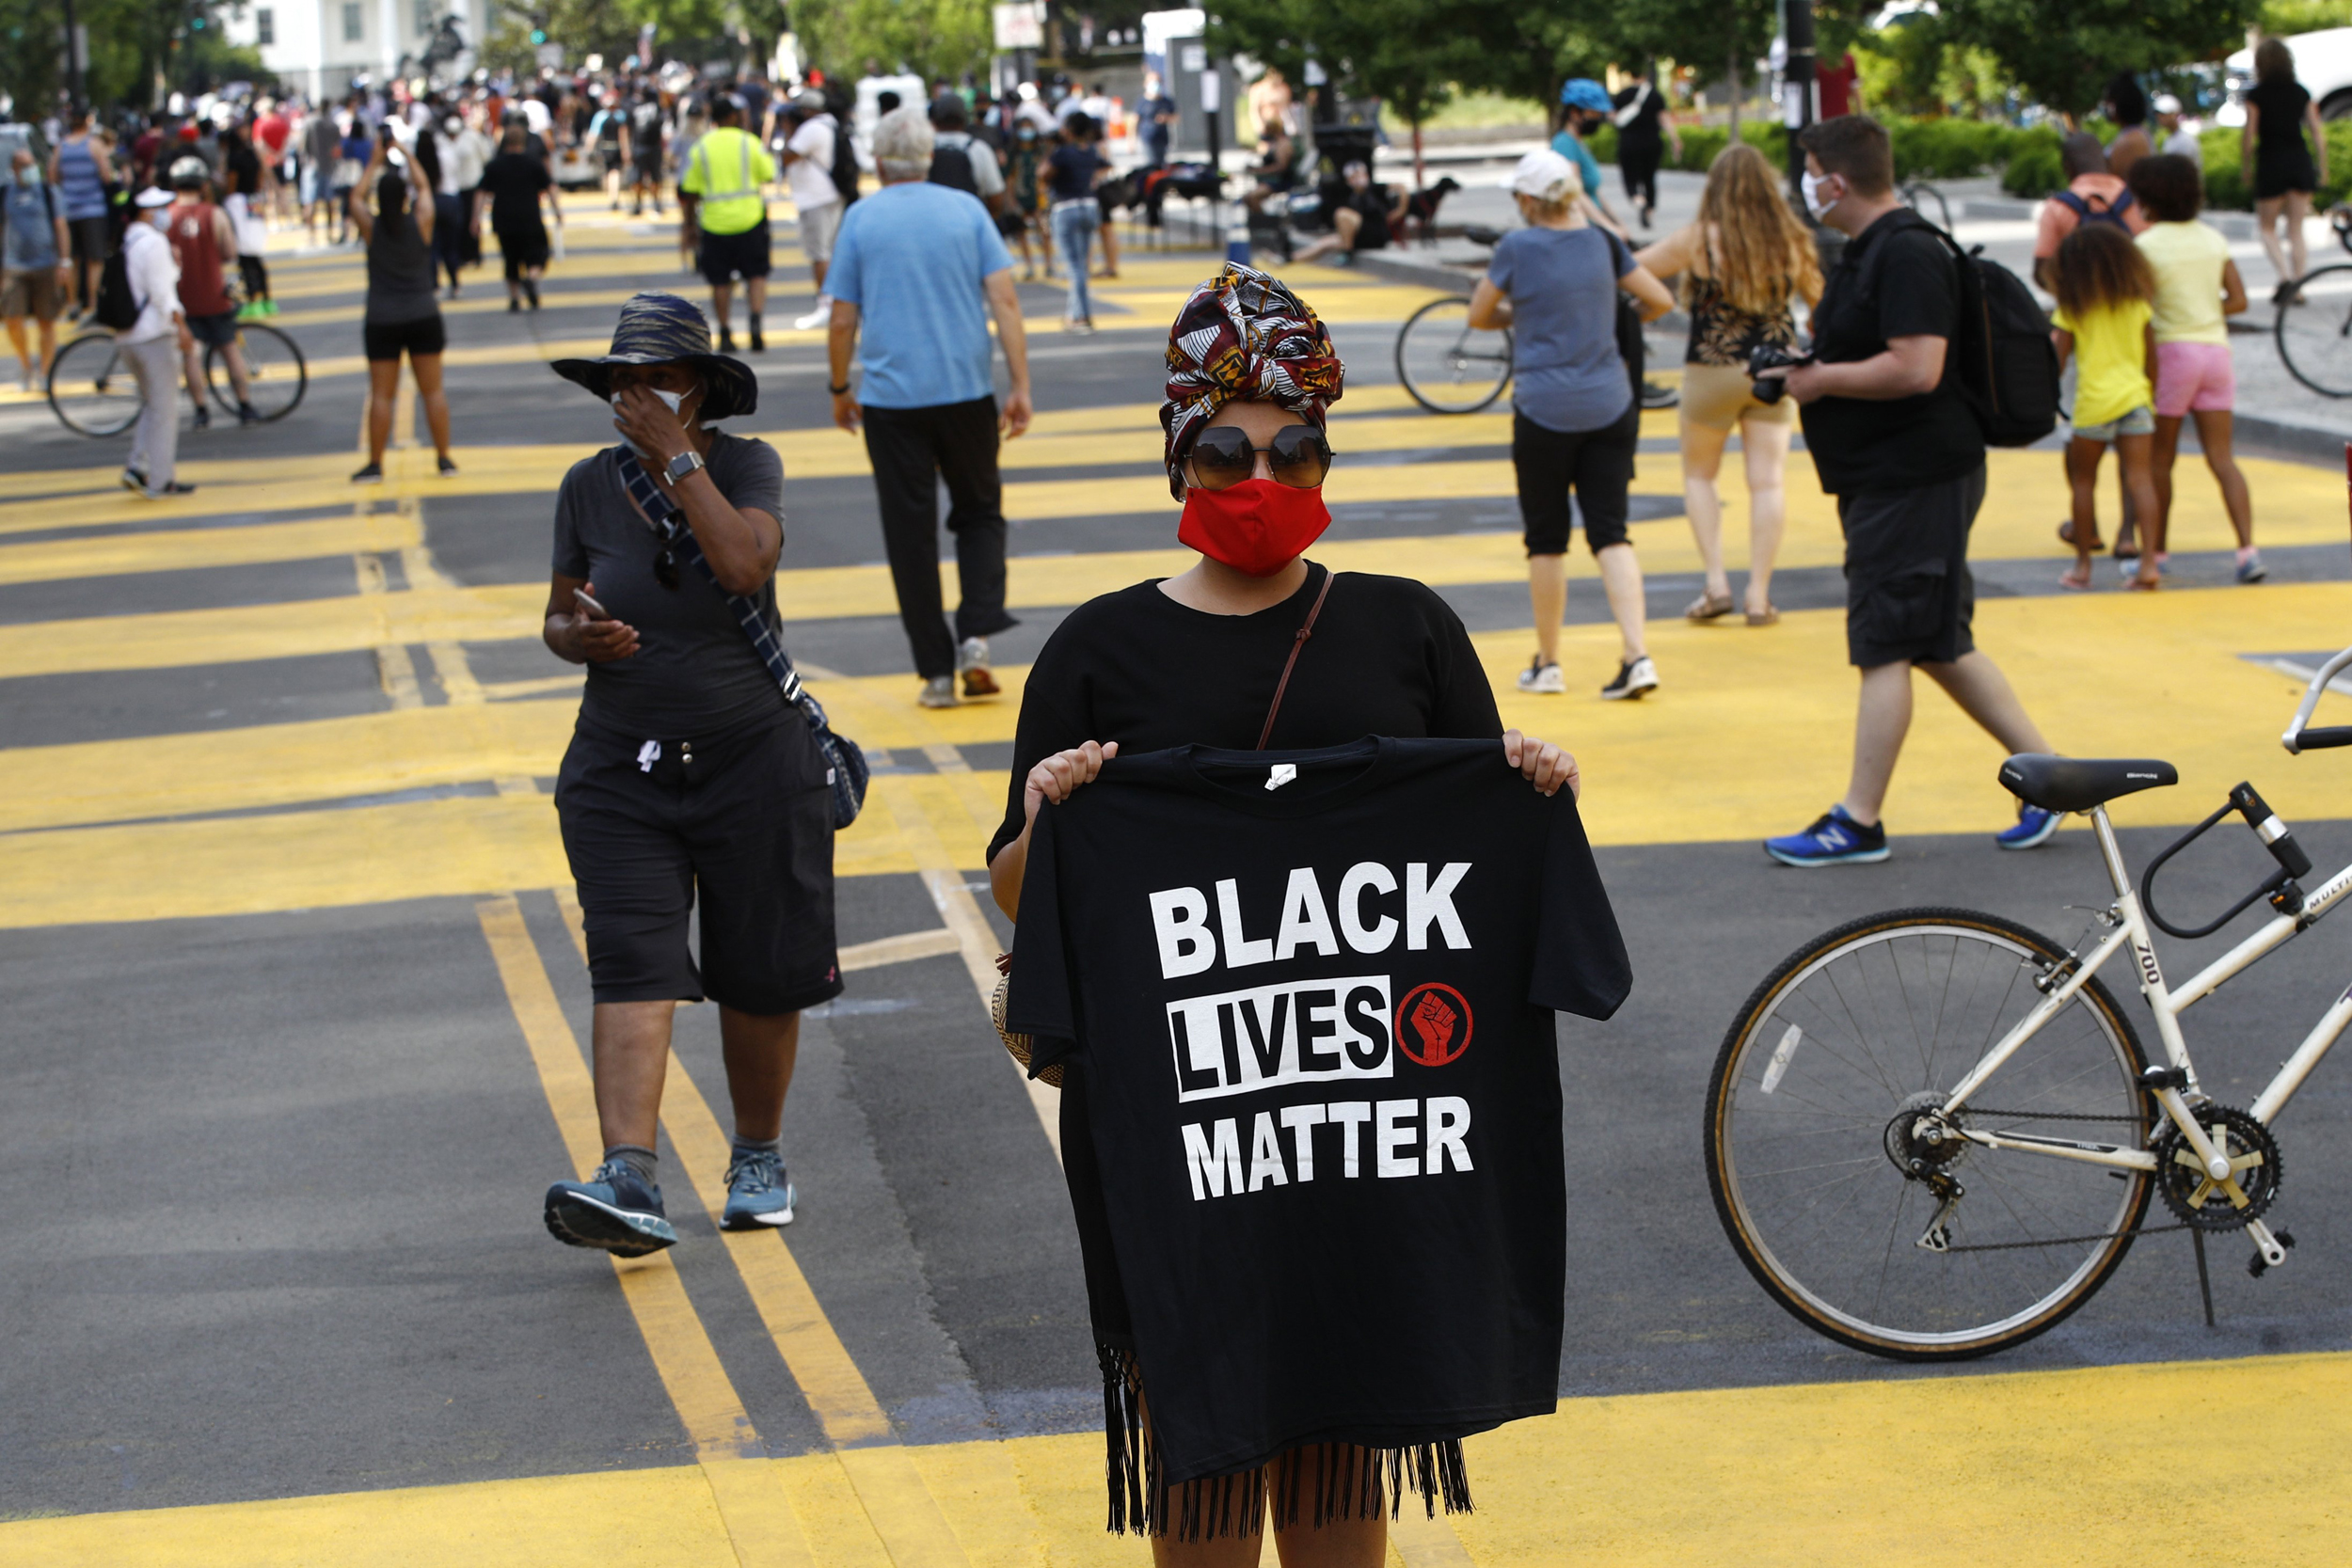 Black Lives Matter Protest Draws All Walks Of Life